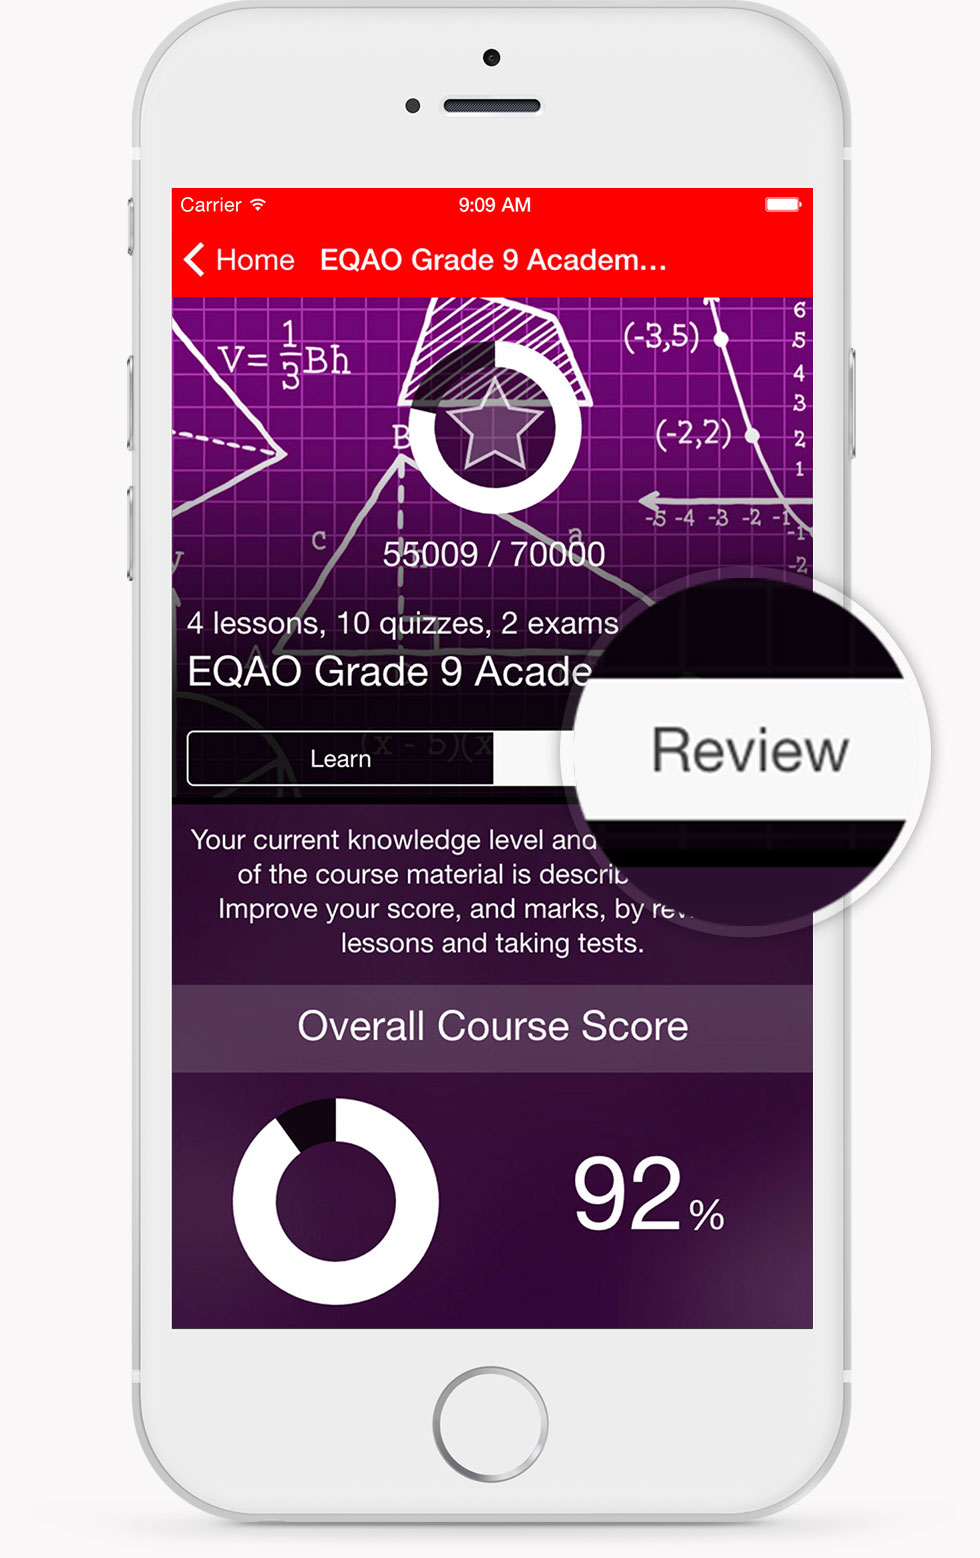 EQAO Academic Math Course Review Screen